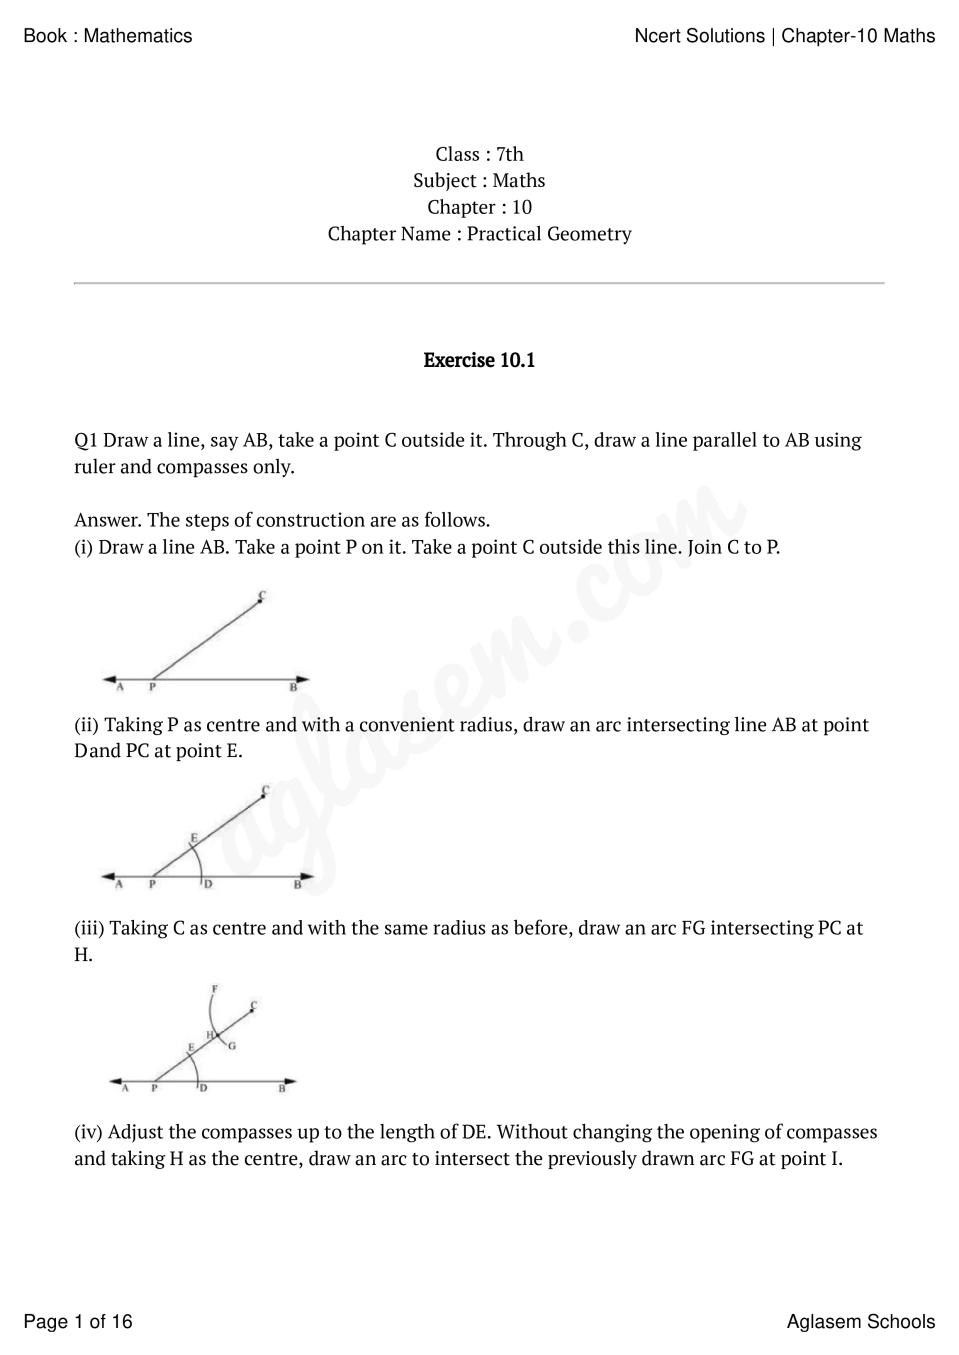 NCERT Solutions for Class 7 Maths Chapter 10 Practical